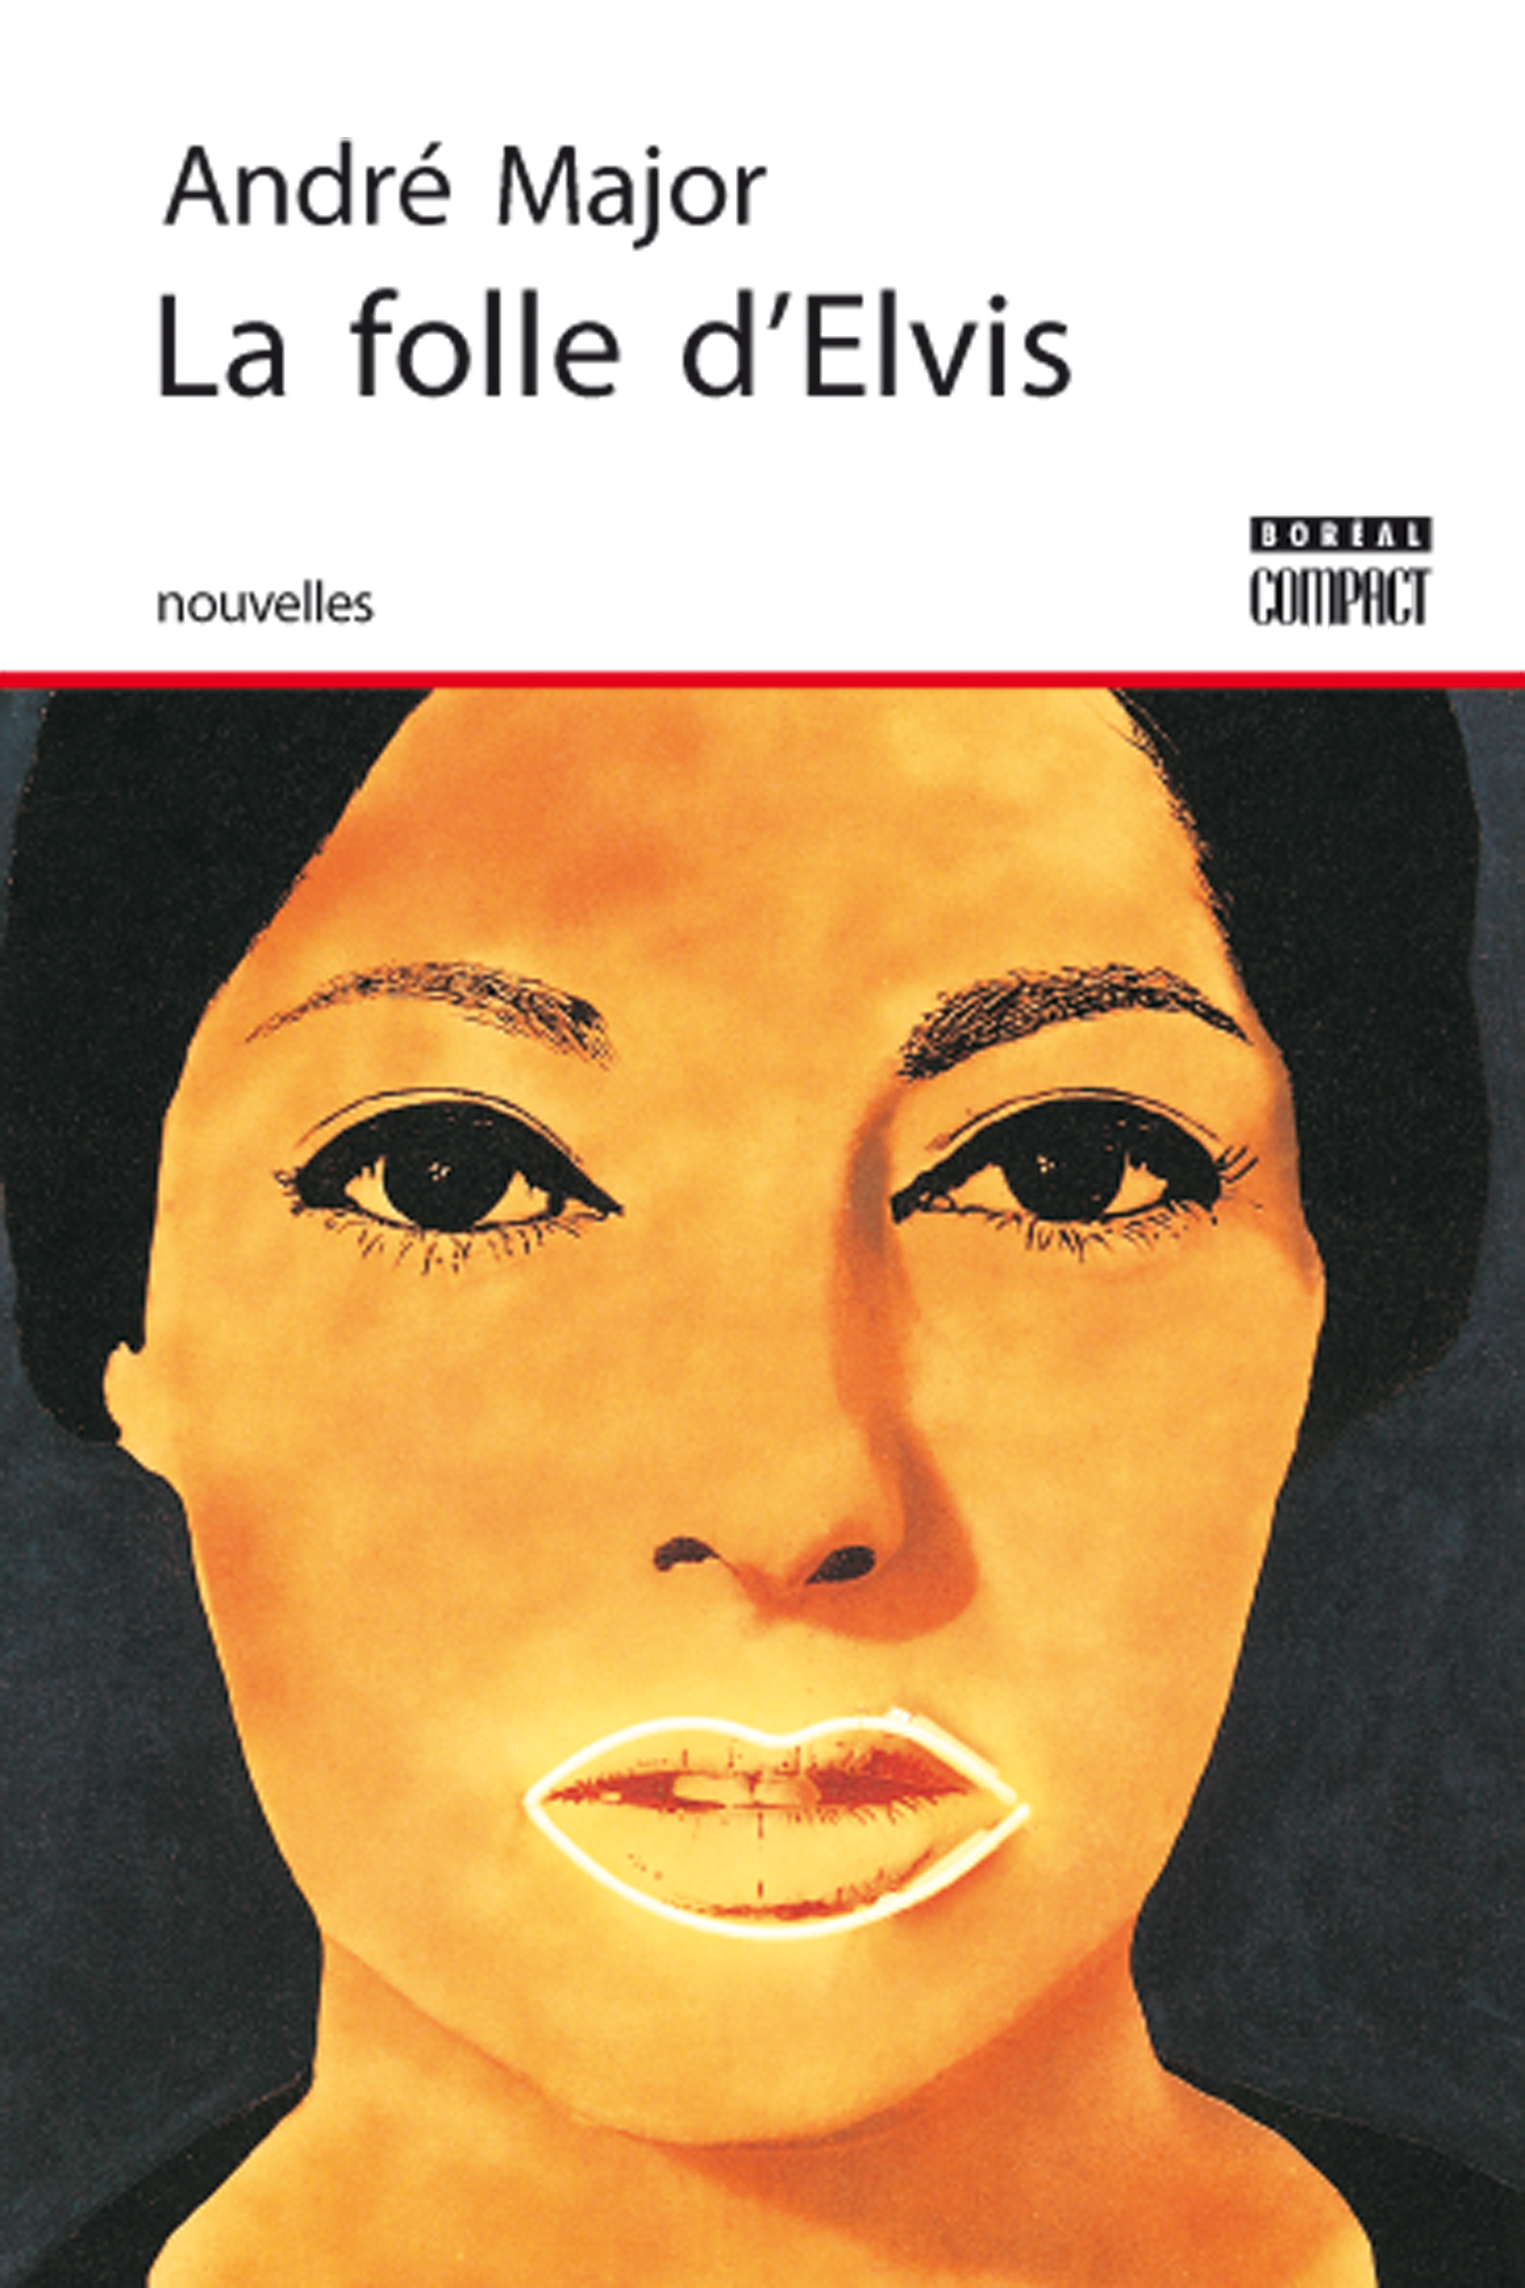 La Folle d'Elvis - André Major